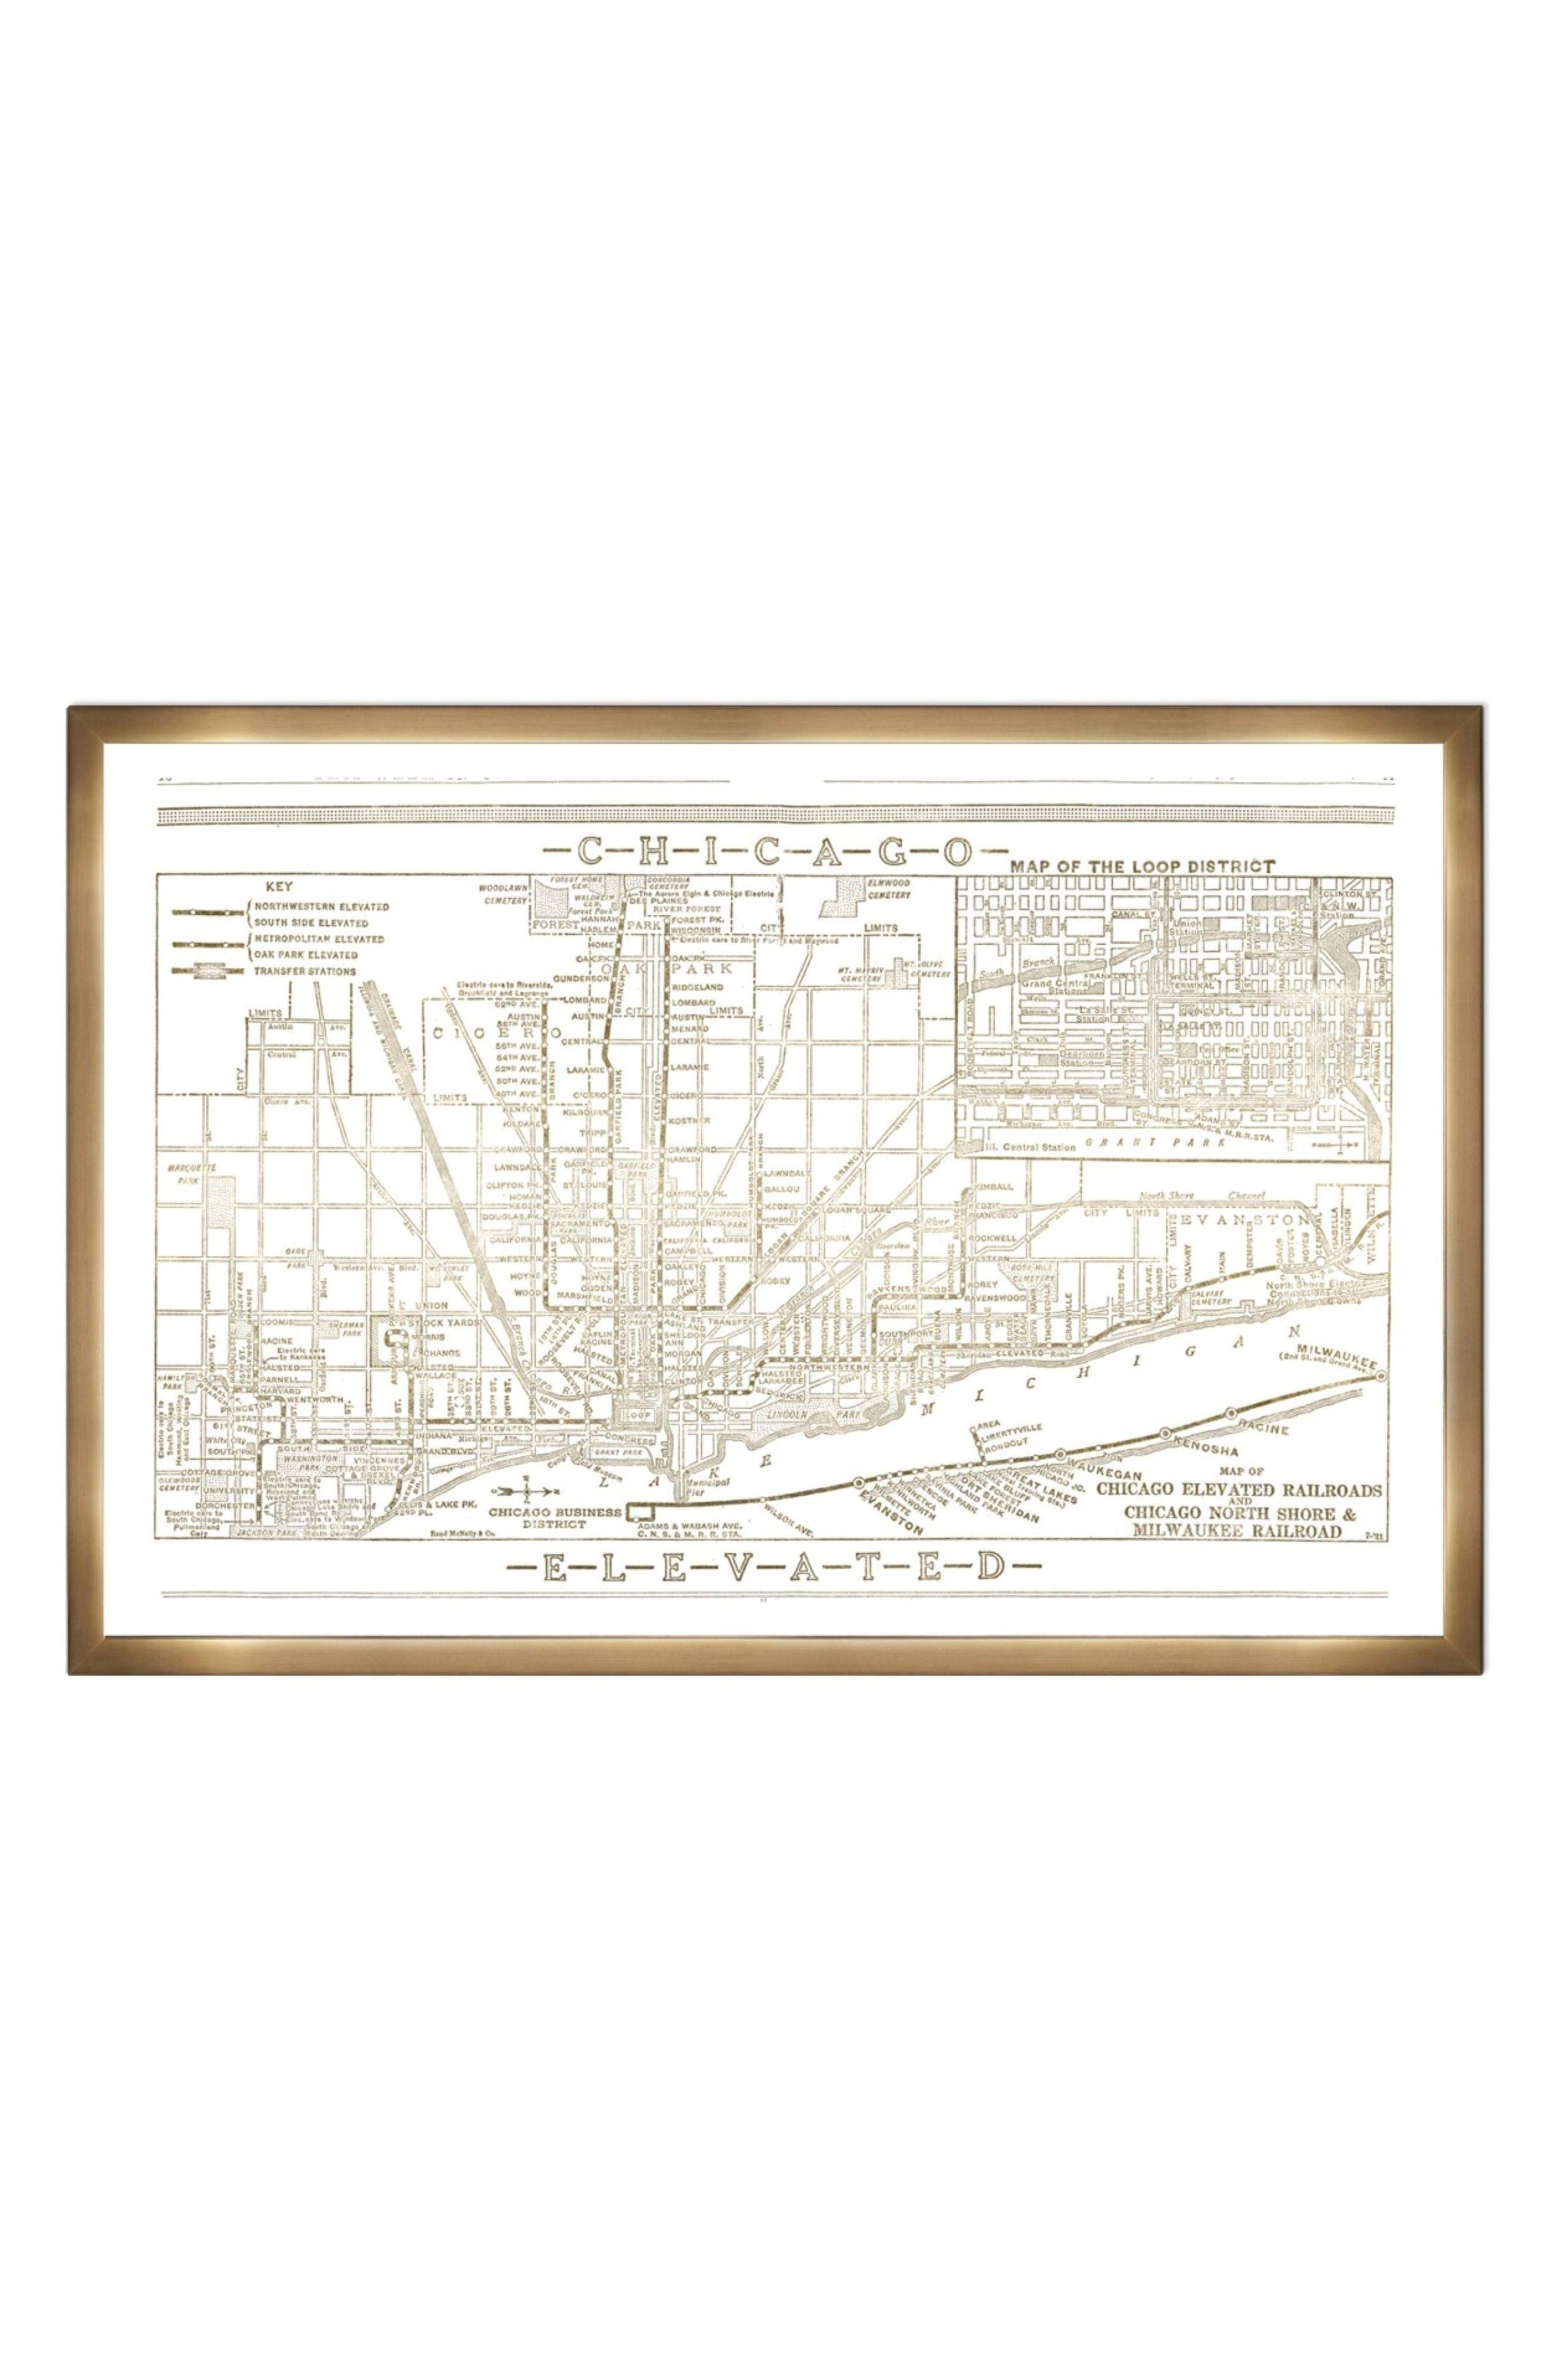 Alternate Image 1 Selected - Oliver Gal Chicago Railroad Blueprint Wall Art